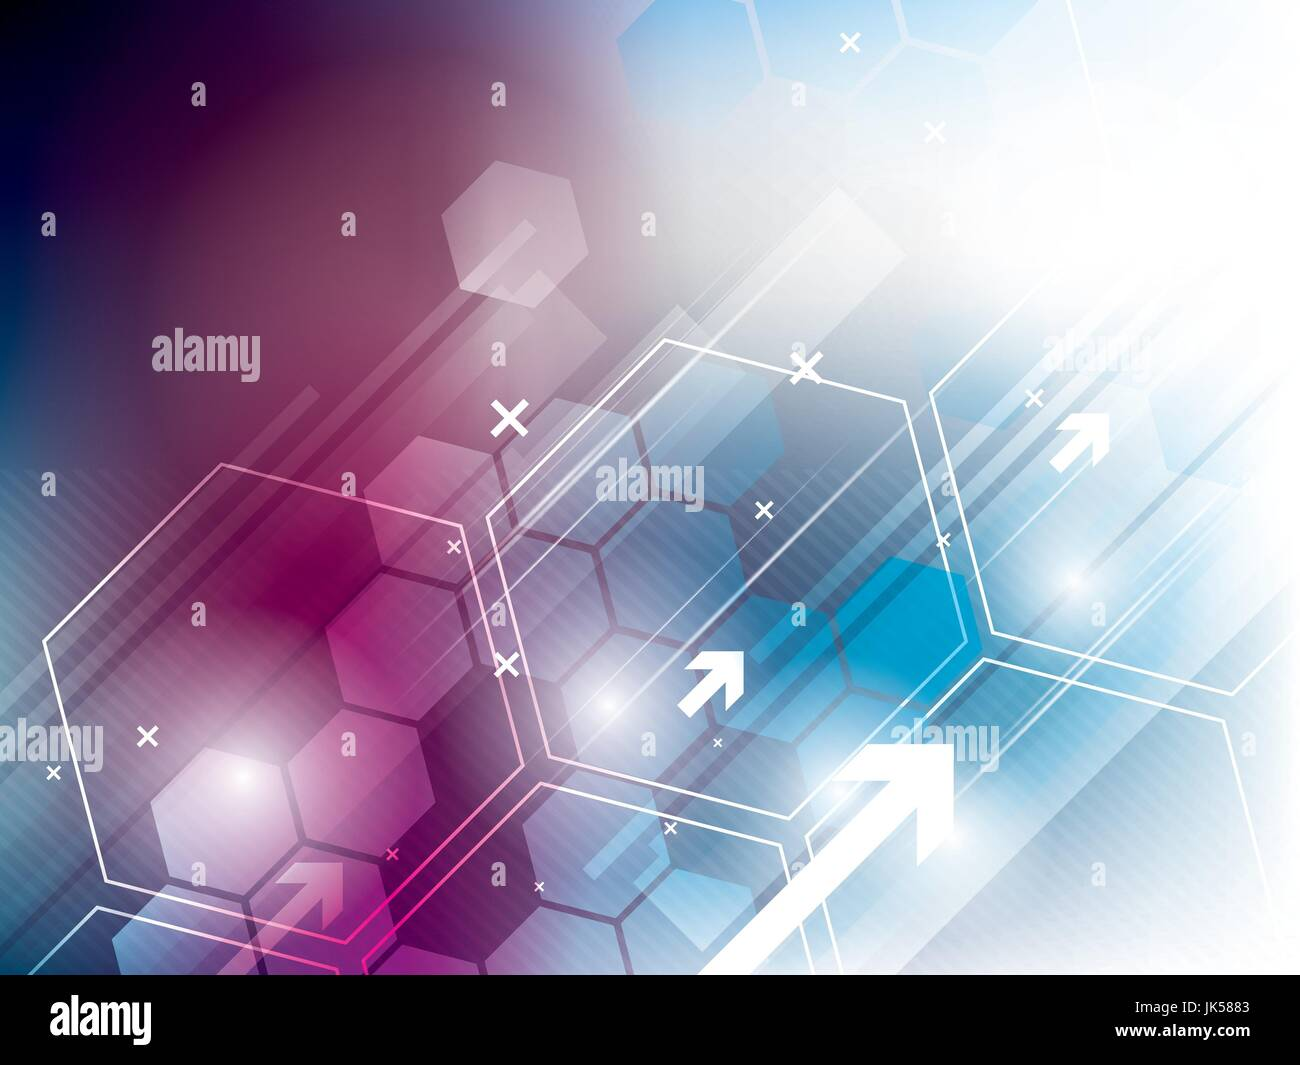 abstract technology background with hexagons - Stock Image